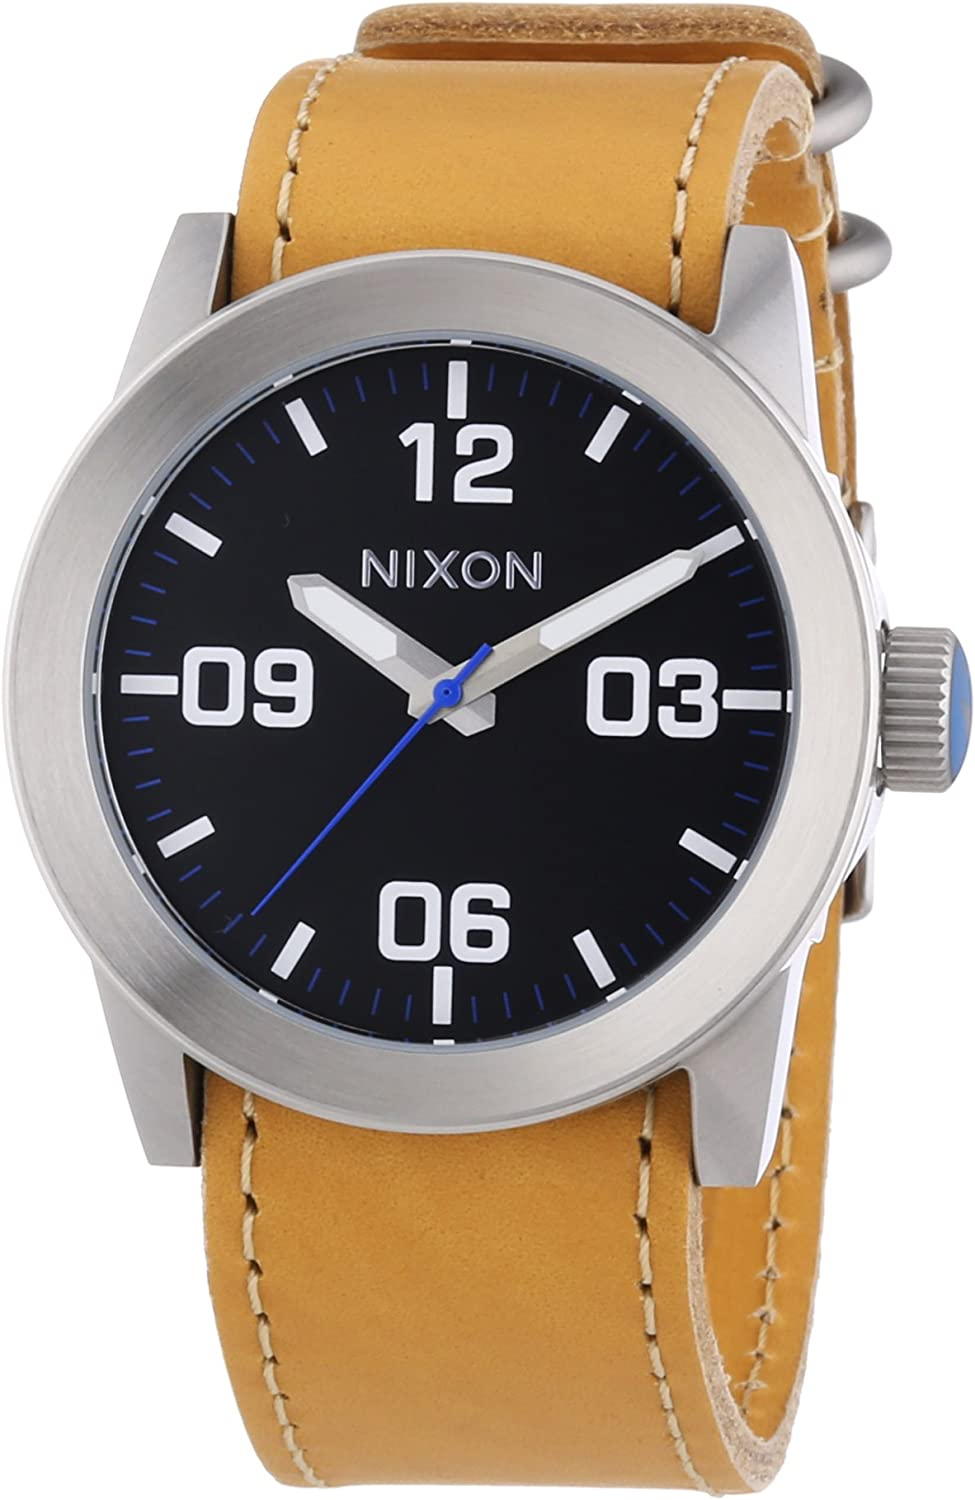 Nixon Private -Spring 2017- Natural/Black